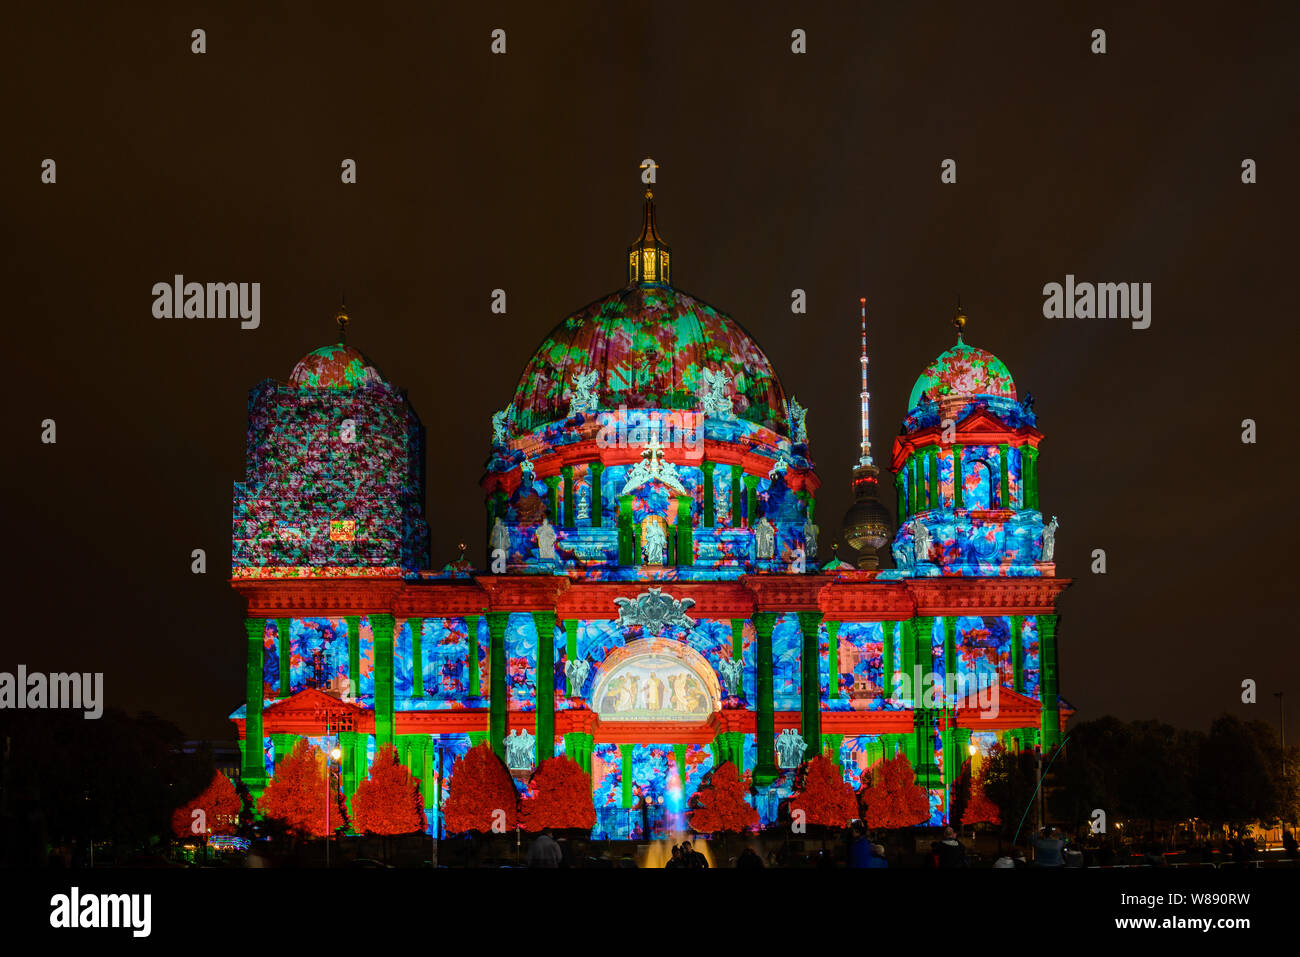 Festival Of Lights Berlin Leuchtet The Projection Mapping Lighting Art At Berliner Dom Berlin Cathedral During The Night On German Unity Day Stock Photo Alamy